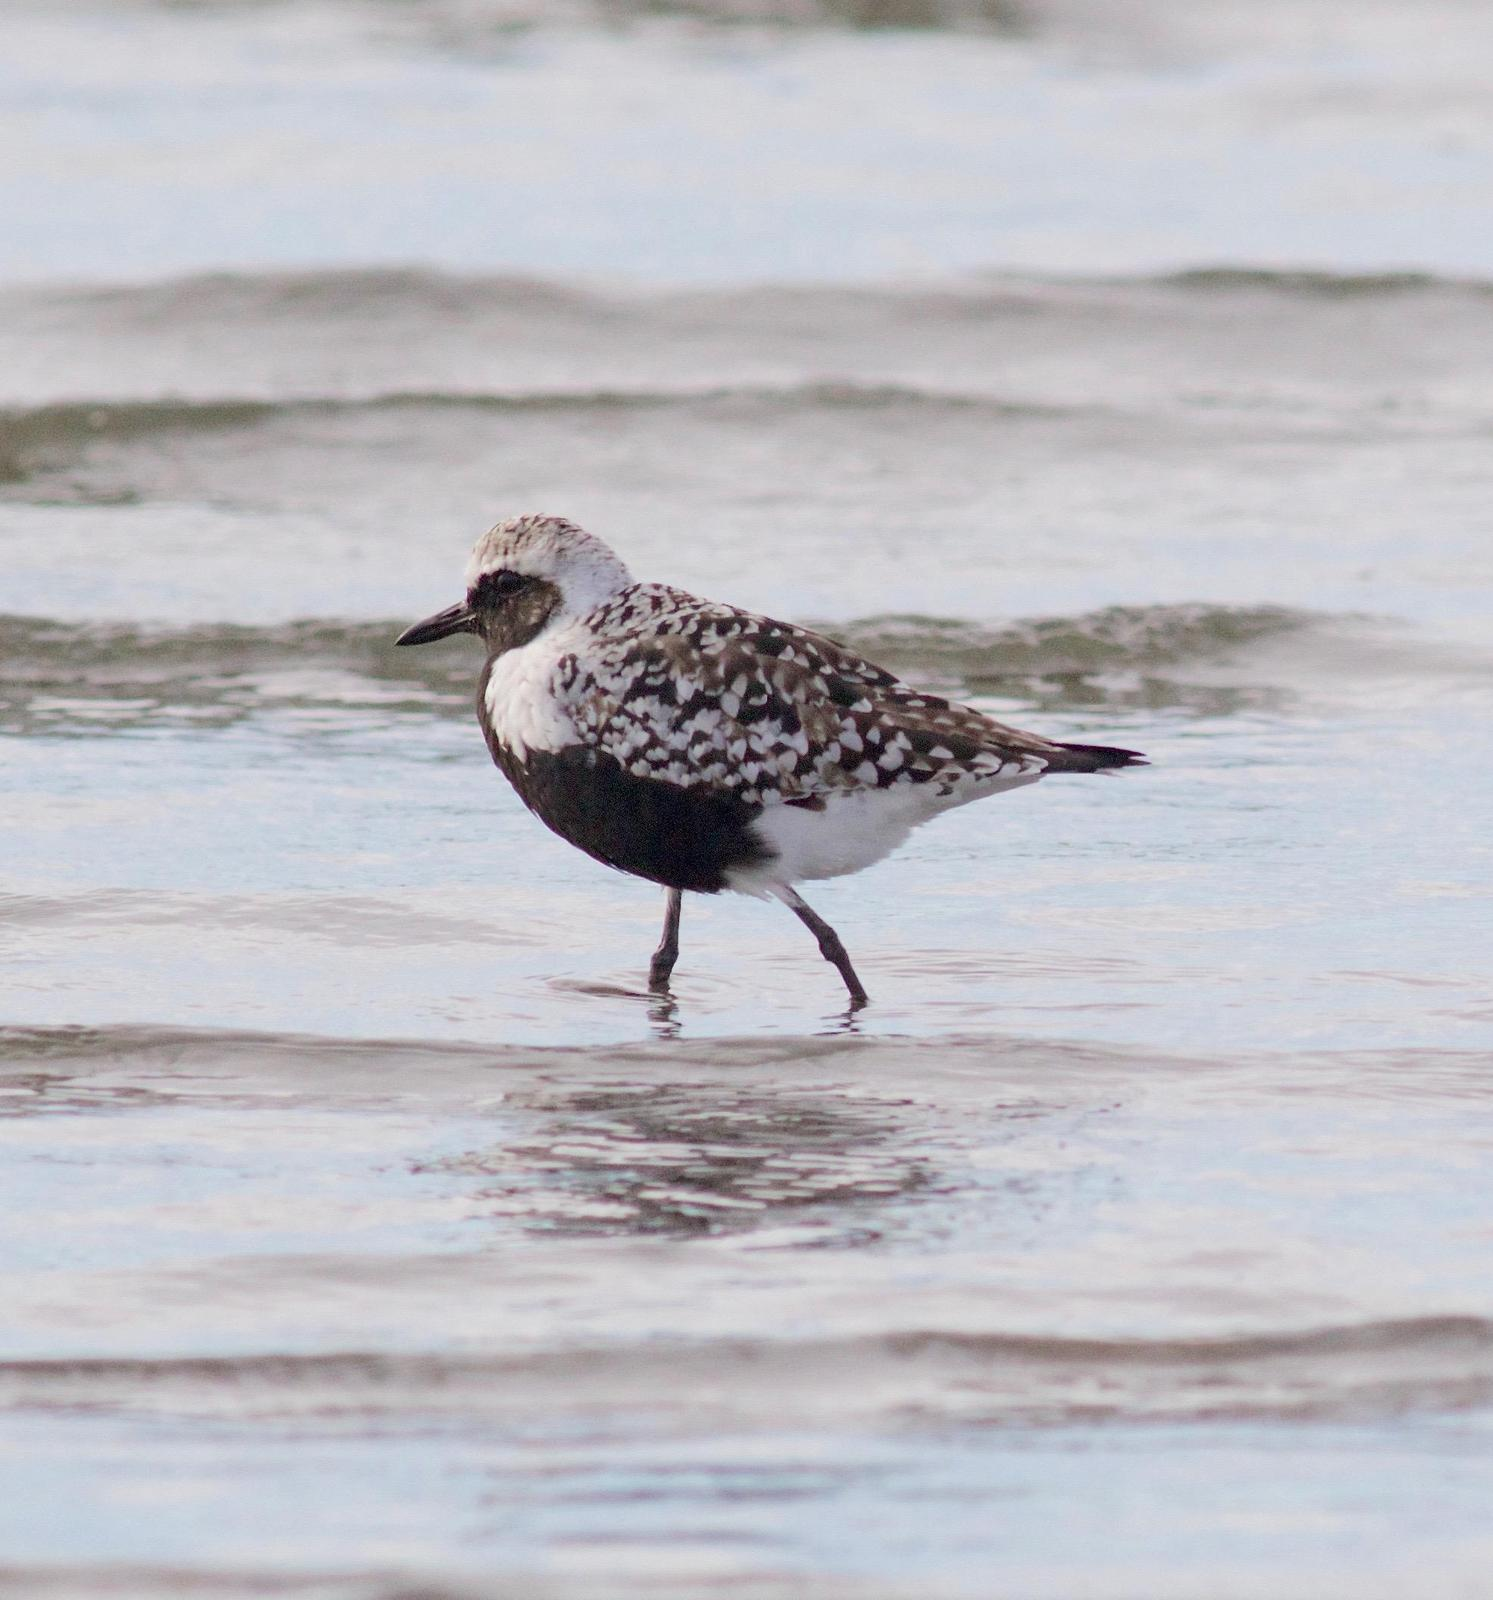 Black-bellied Plover Photo by Kathryn Keith